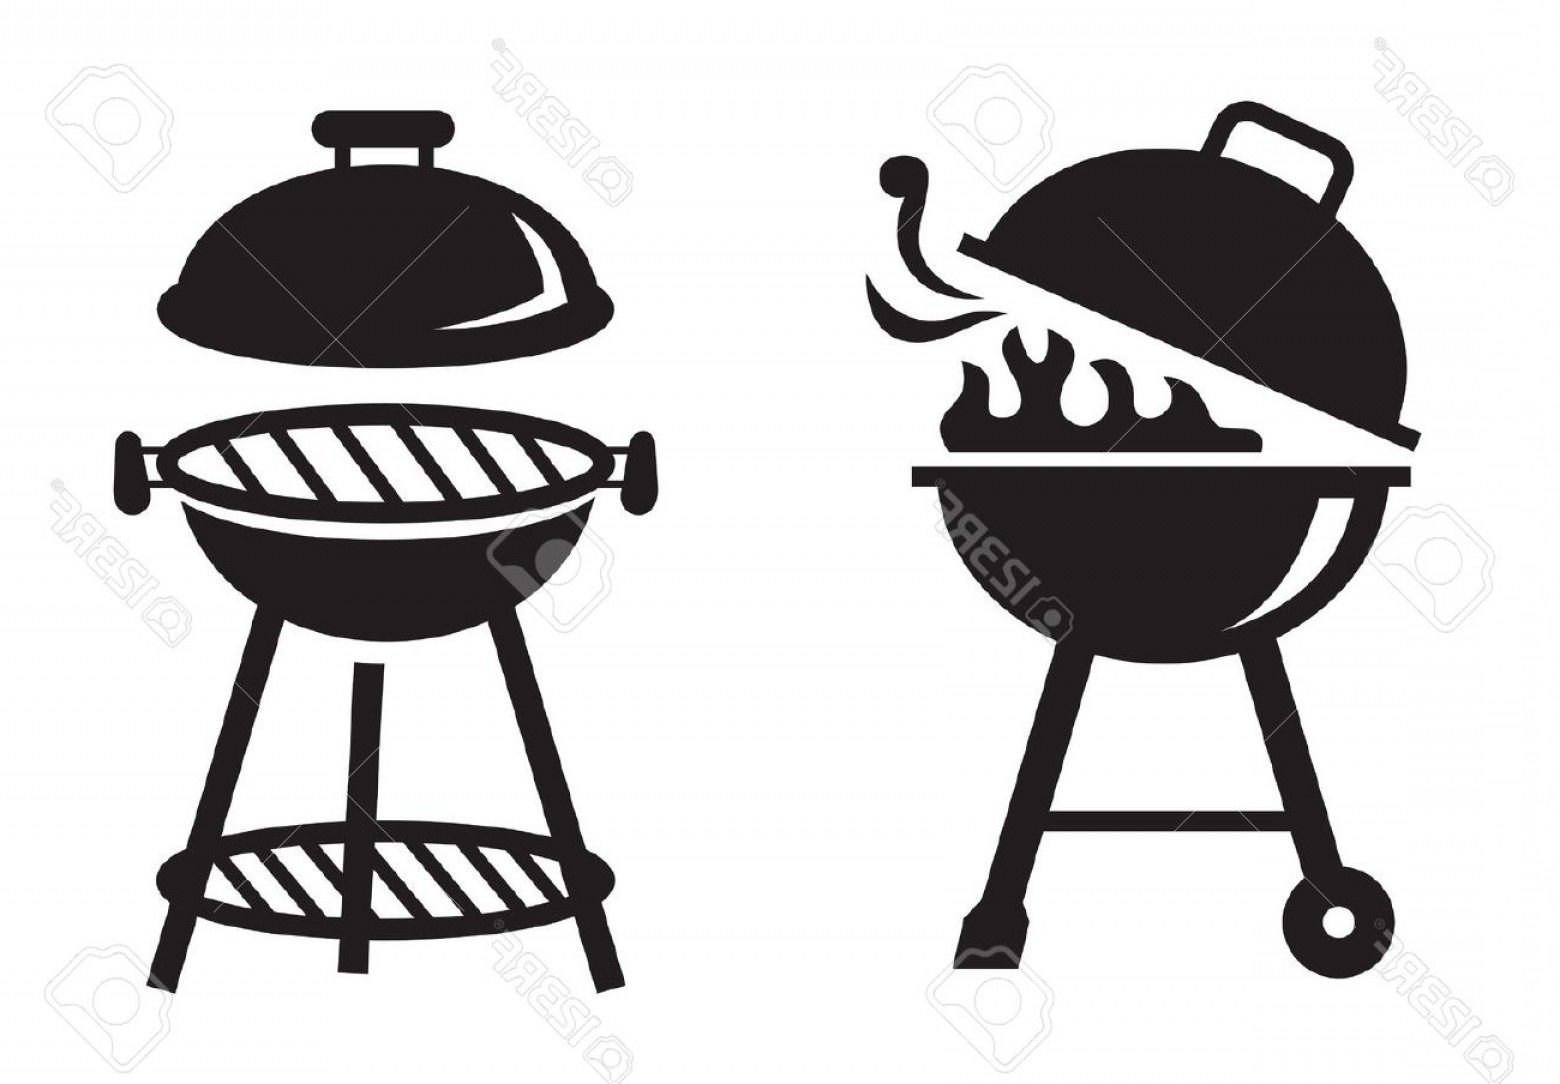 Bbq Grill Vector At Getdrawings